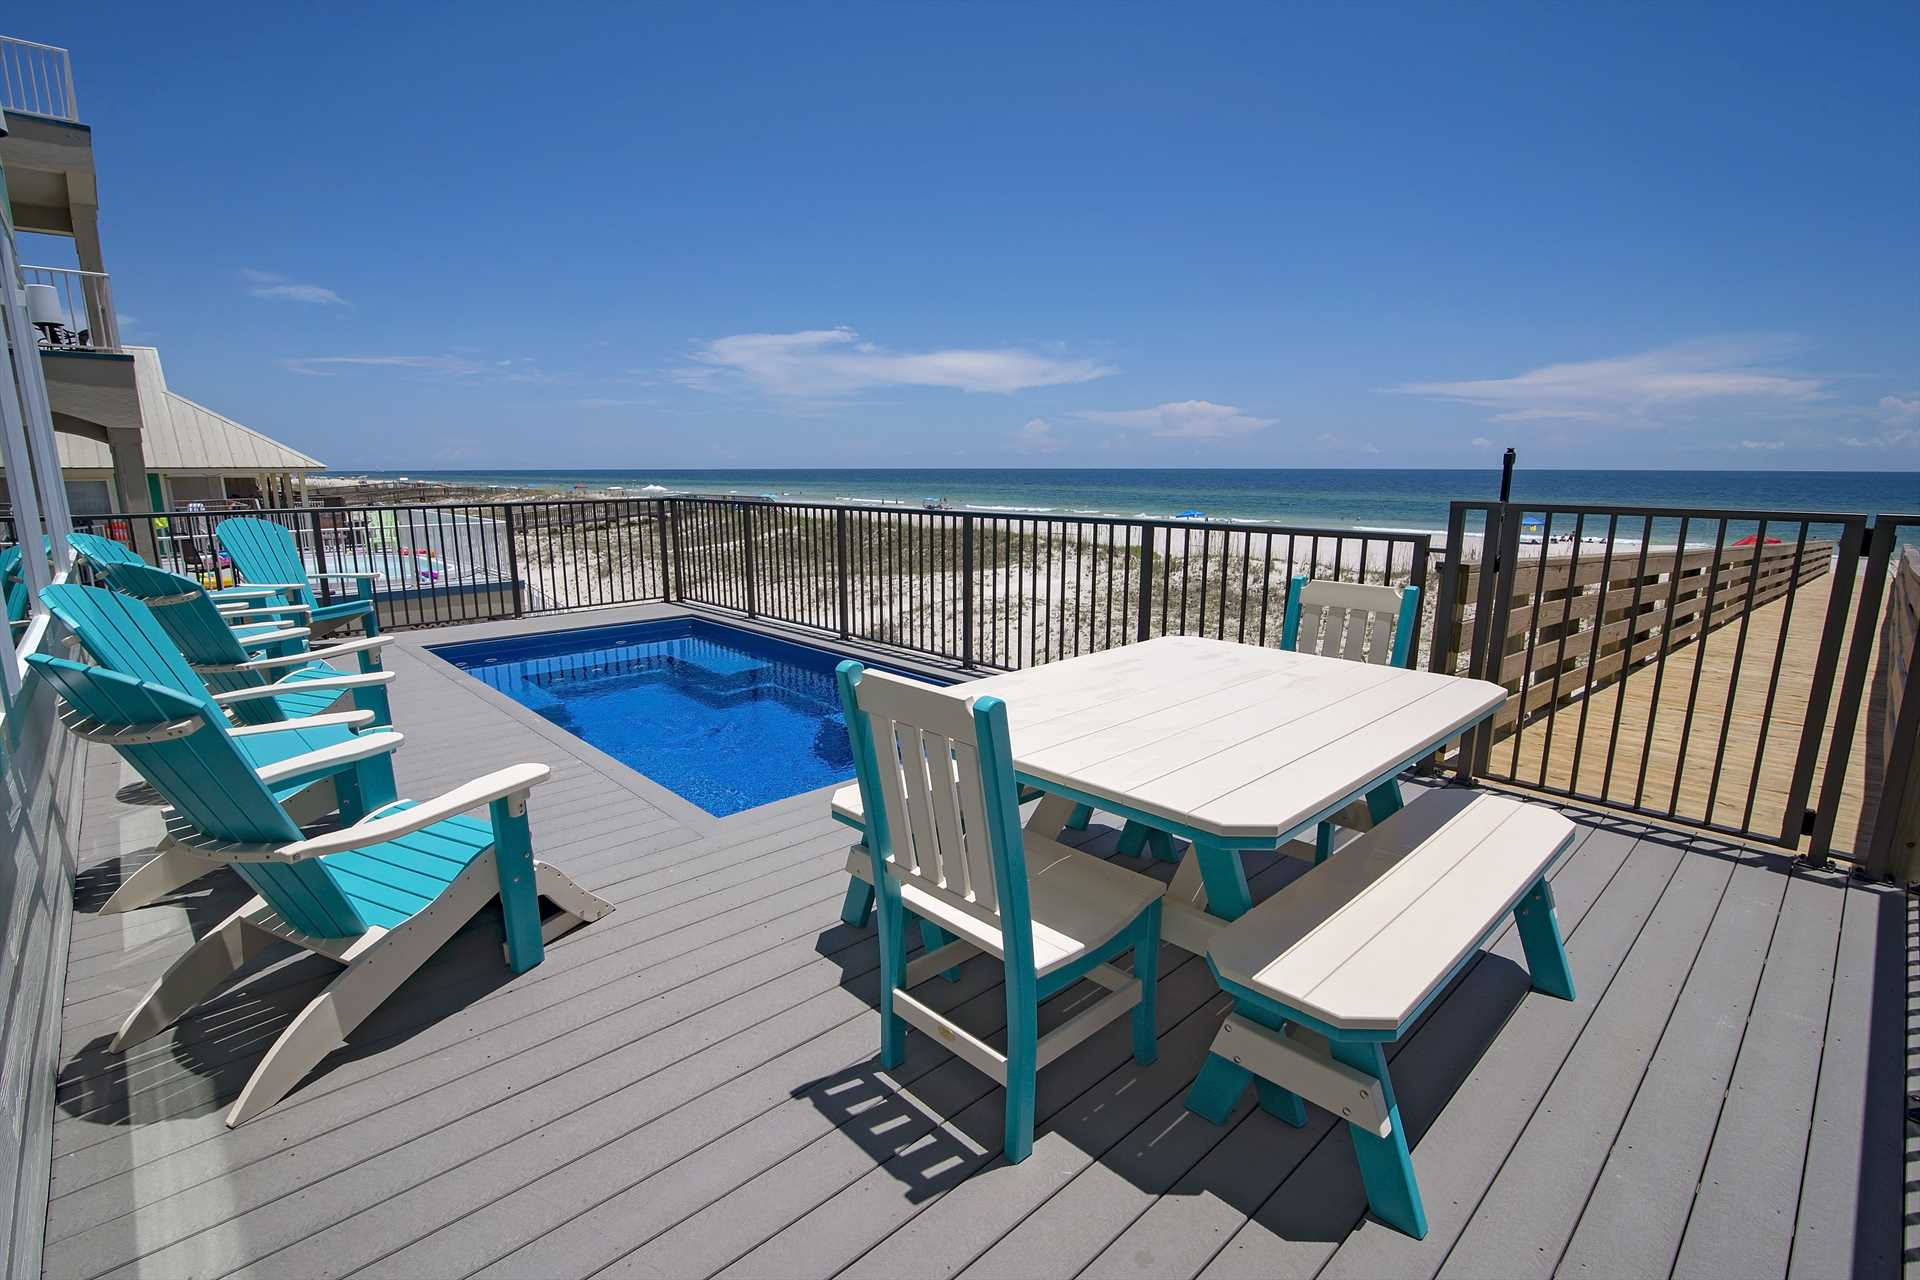 Yassy Beach House In Gulf Shores